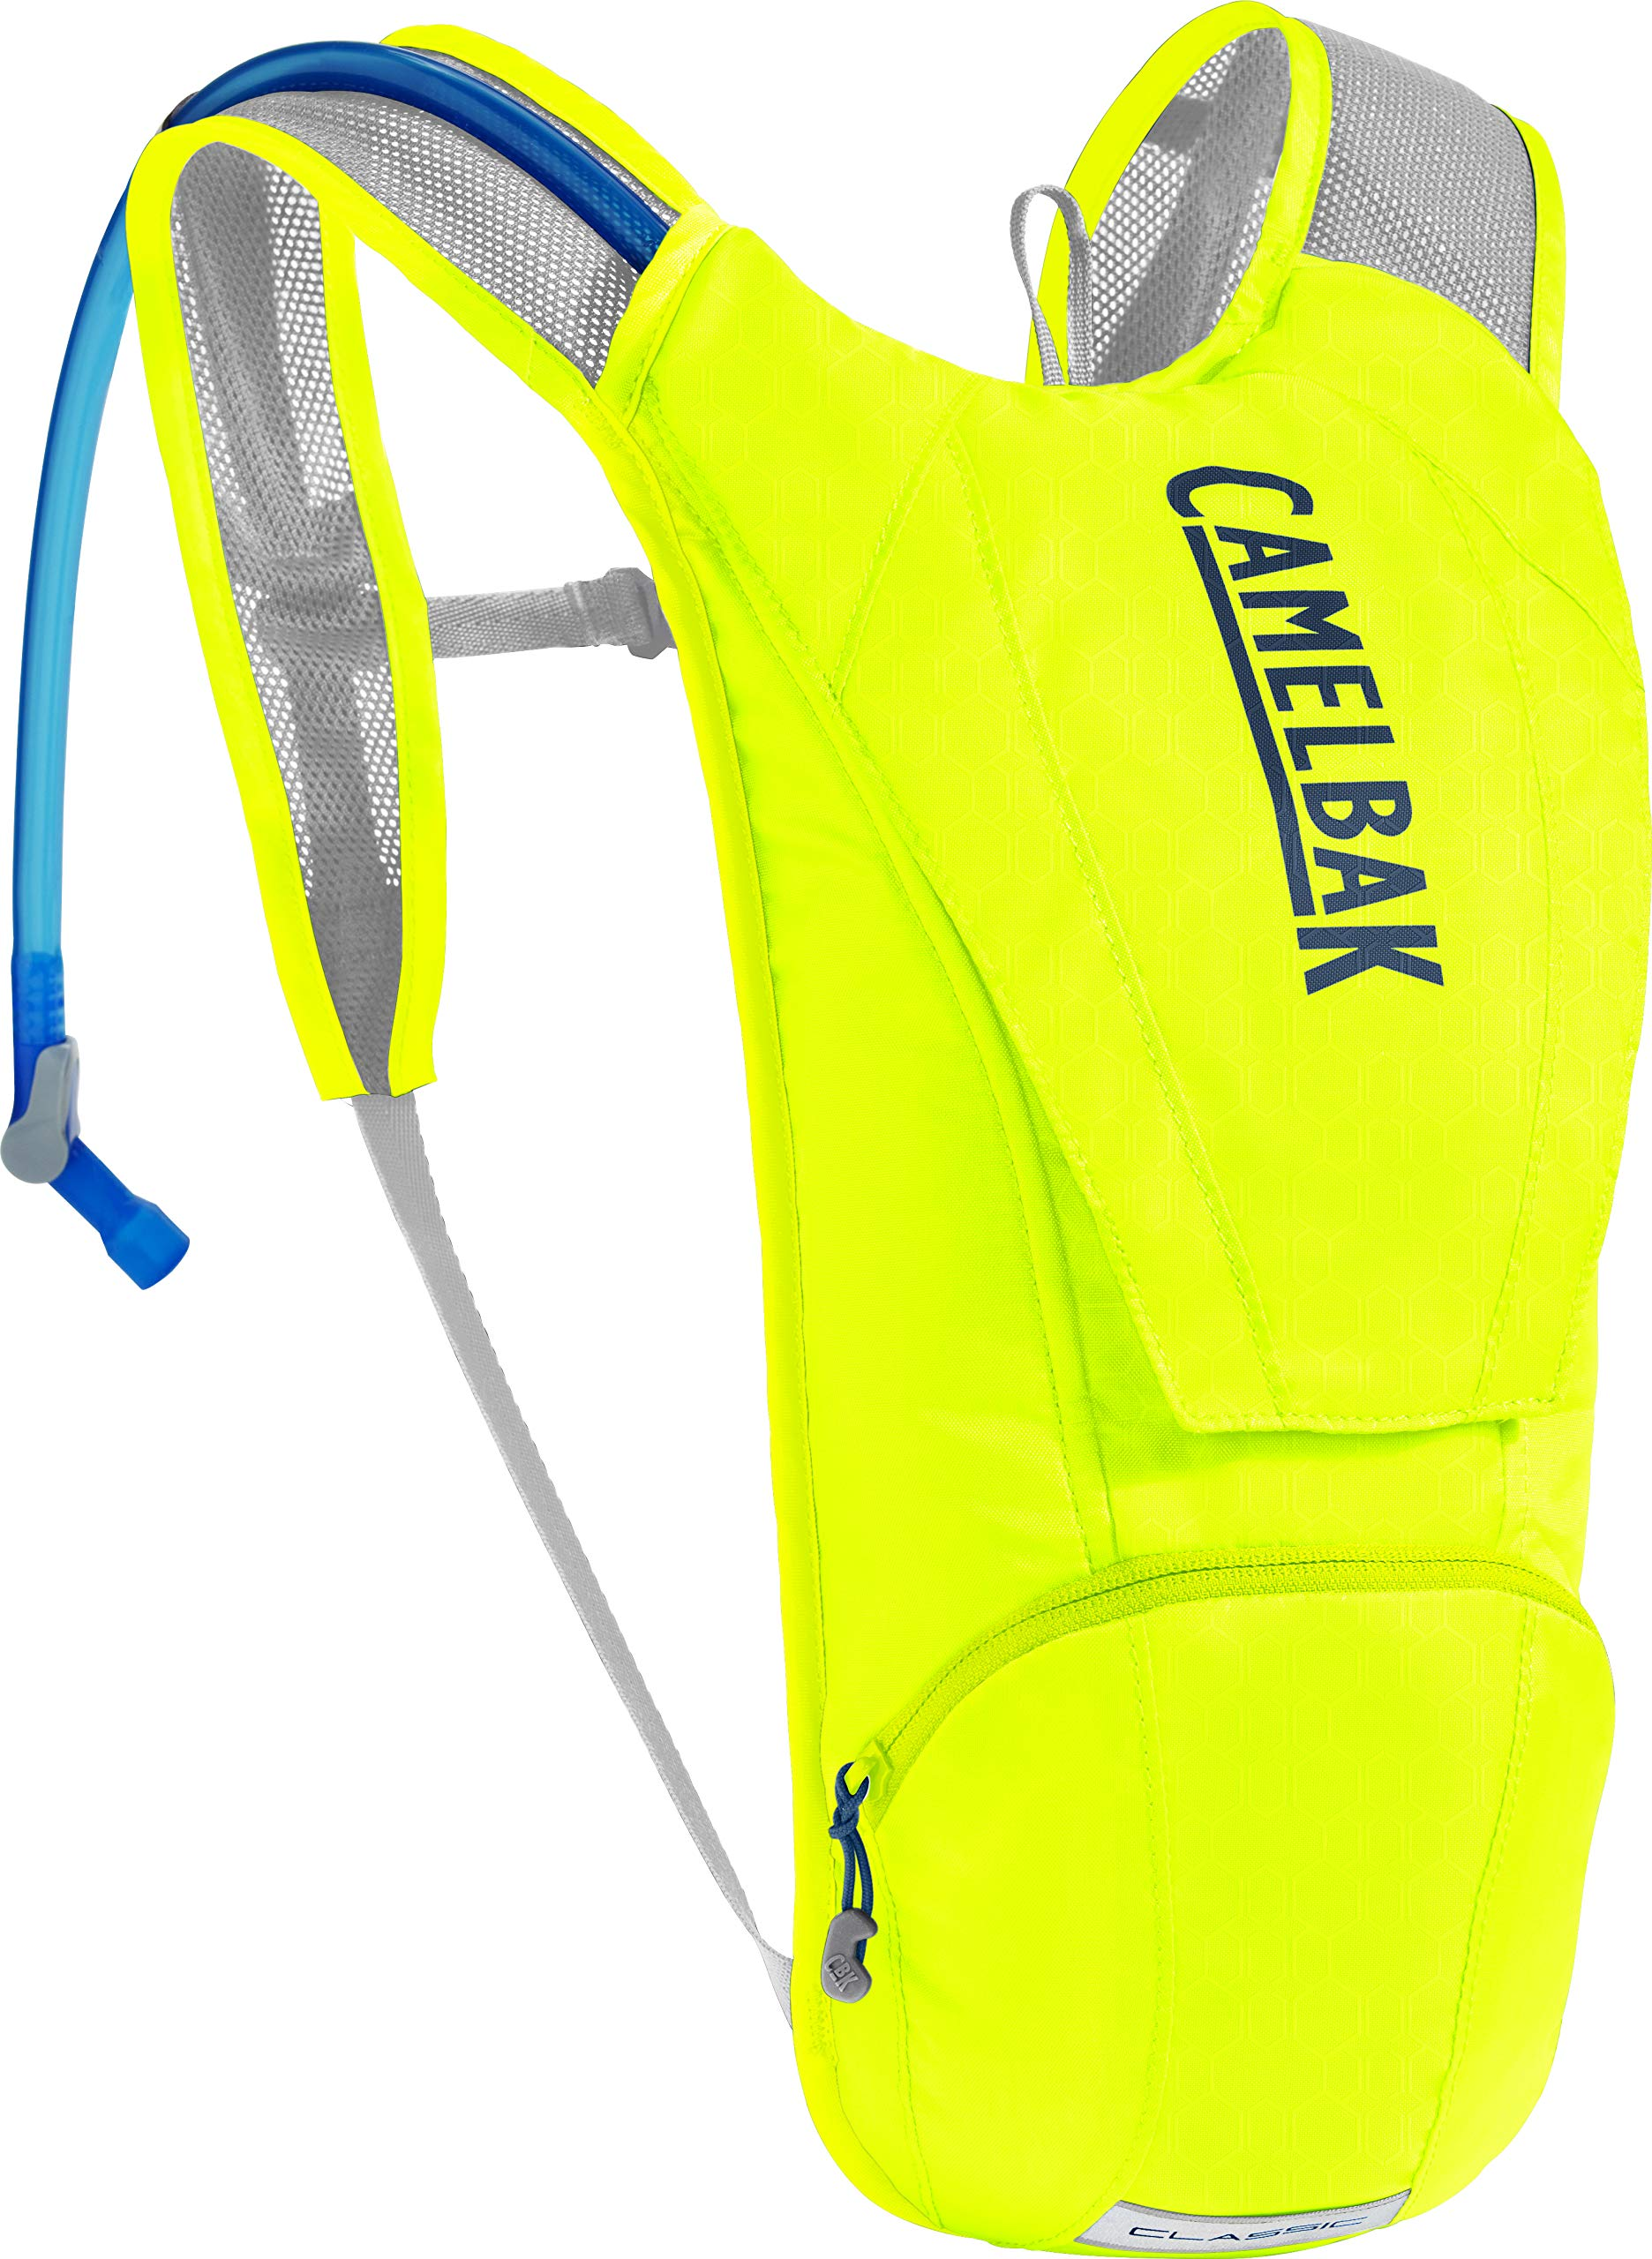 CamelBak Classic 85 oz, Safety Yellow/Navy, One Size